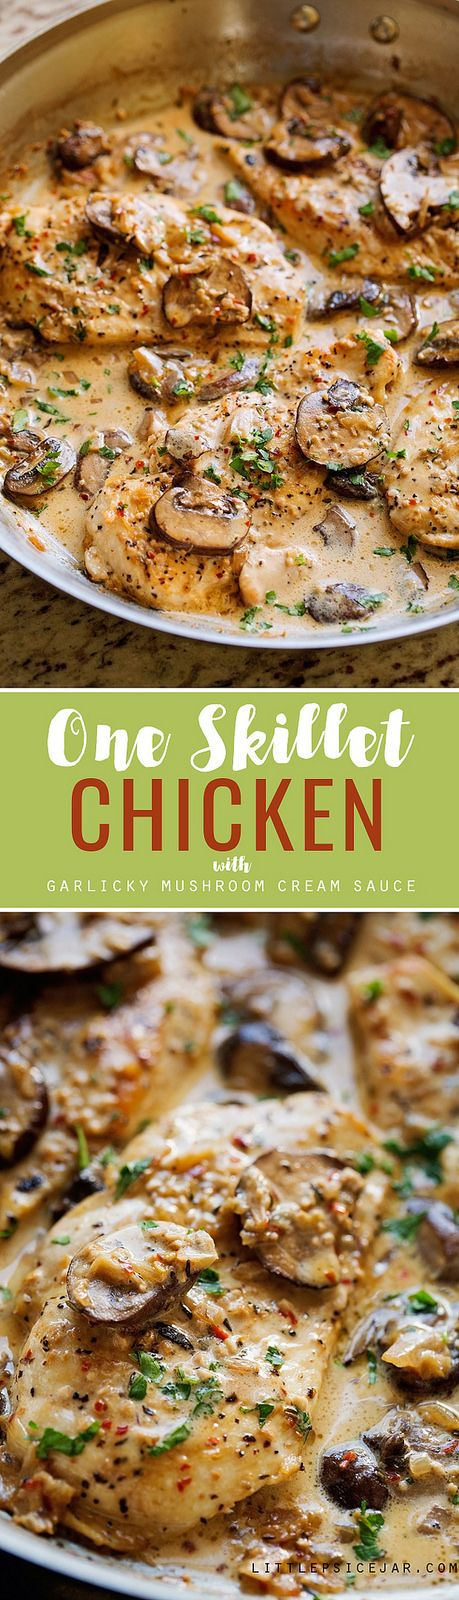 One-Skillet-Chicken-with-Garlicky-Mushroom-Cream-Sauce-8(2)